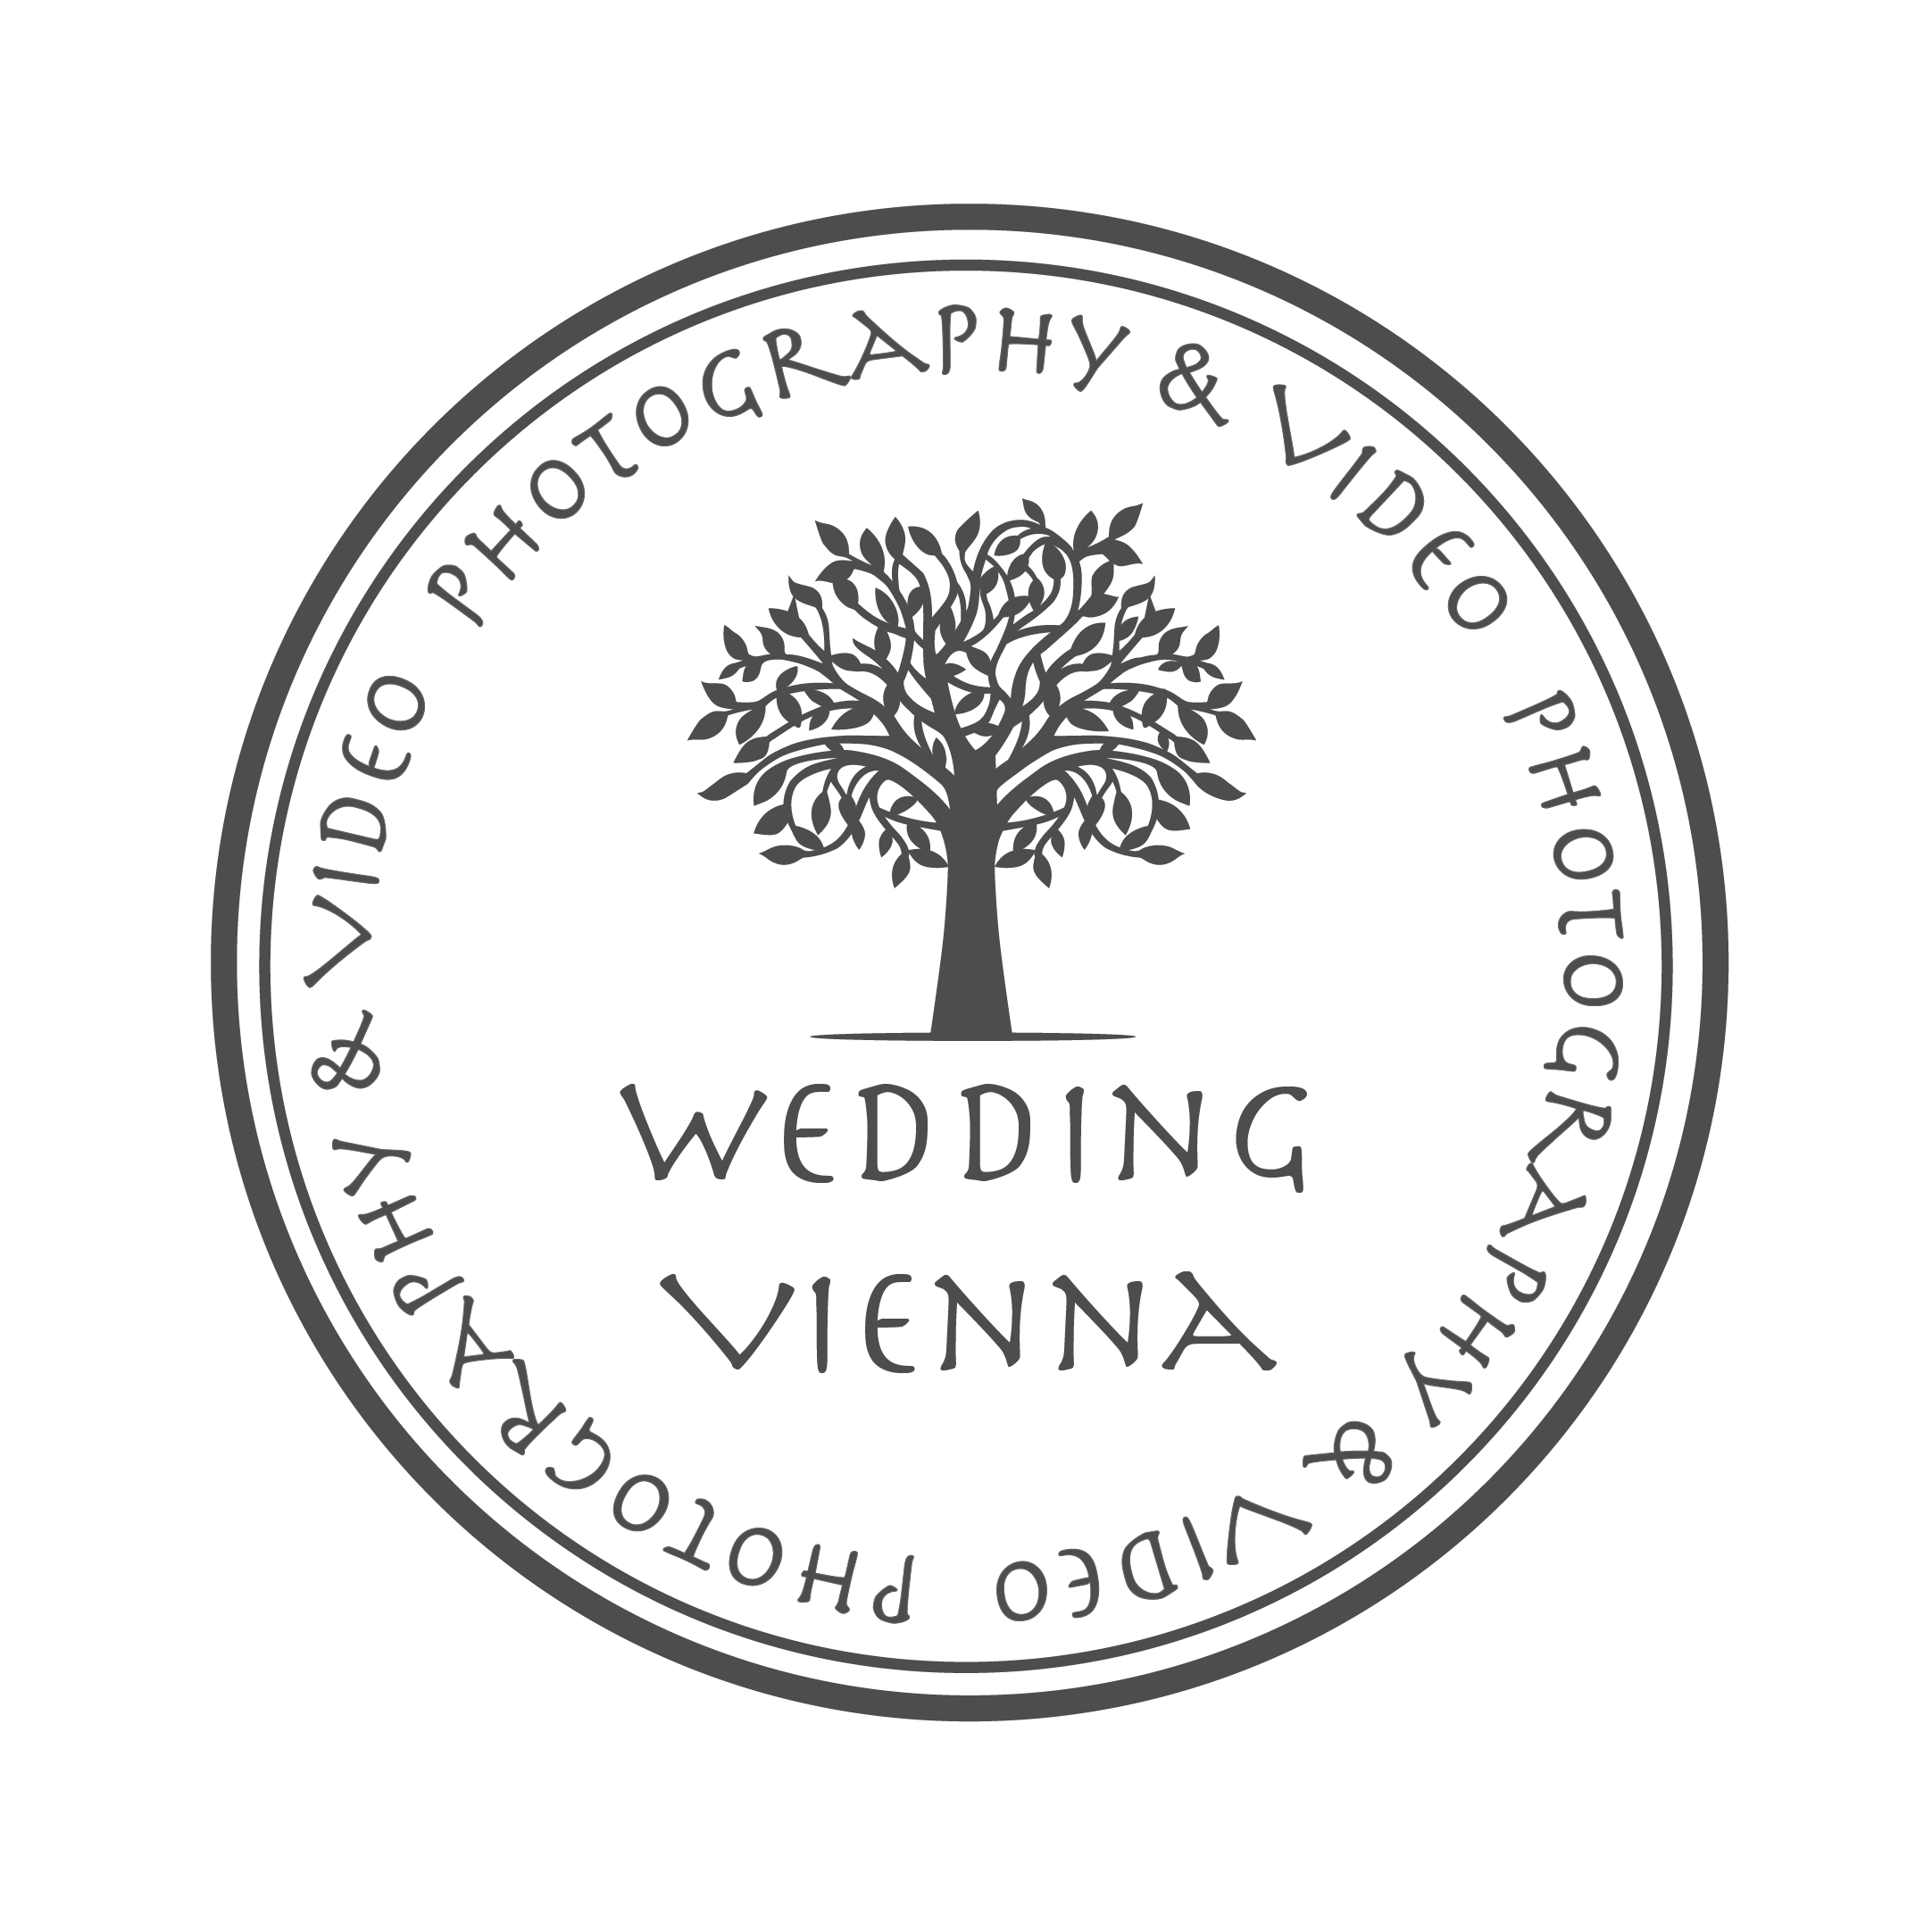 Wedding Vienna 2019